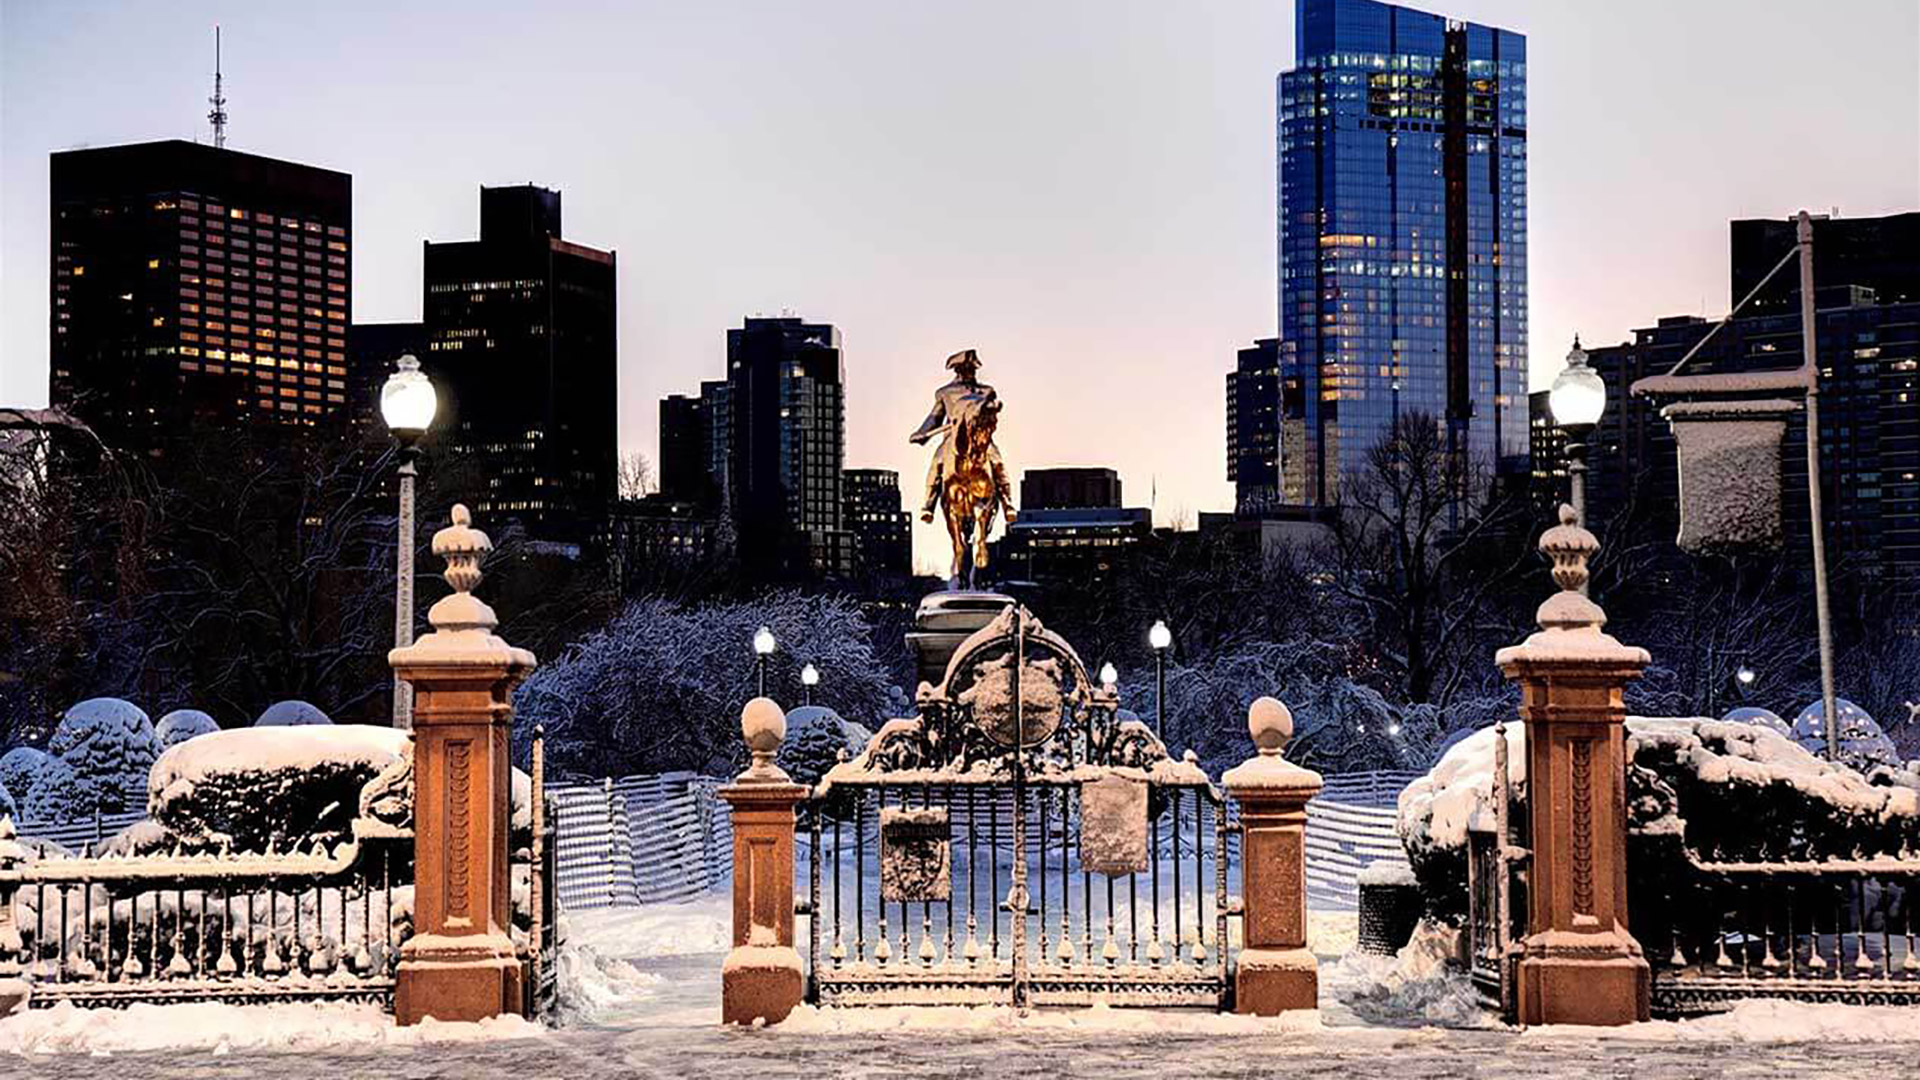 Winter scene at Boston Public Garden featuring gates, fence and trees covered in snow and in the background, a statue of George Washington riding on a horse and the city skyline in the back